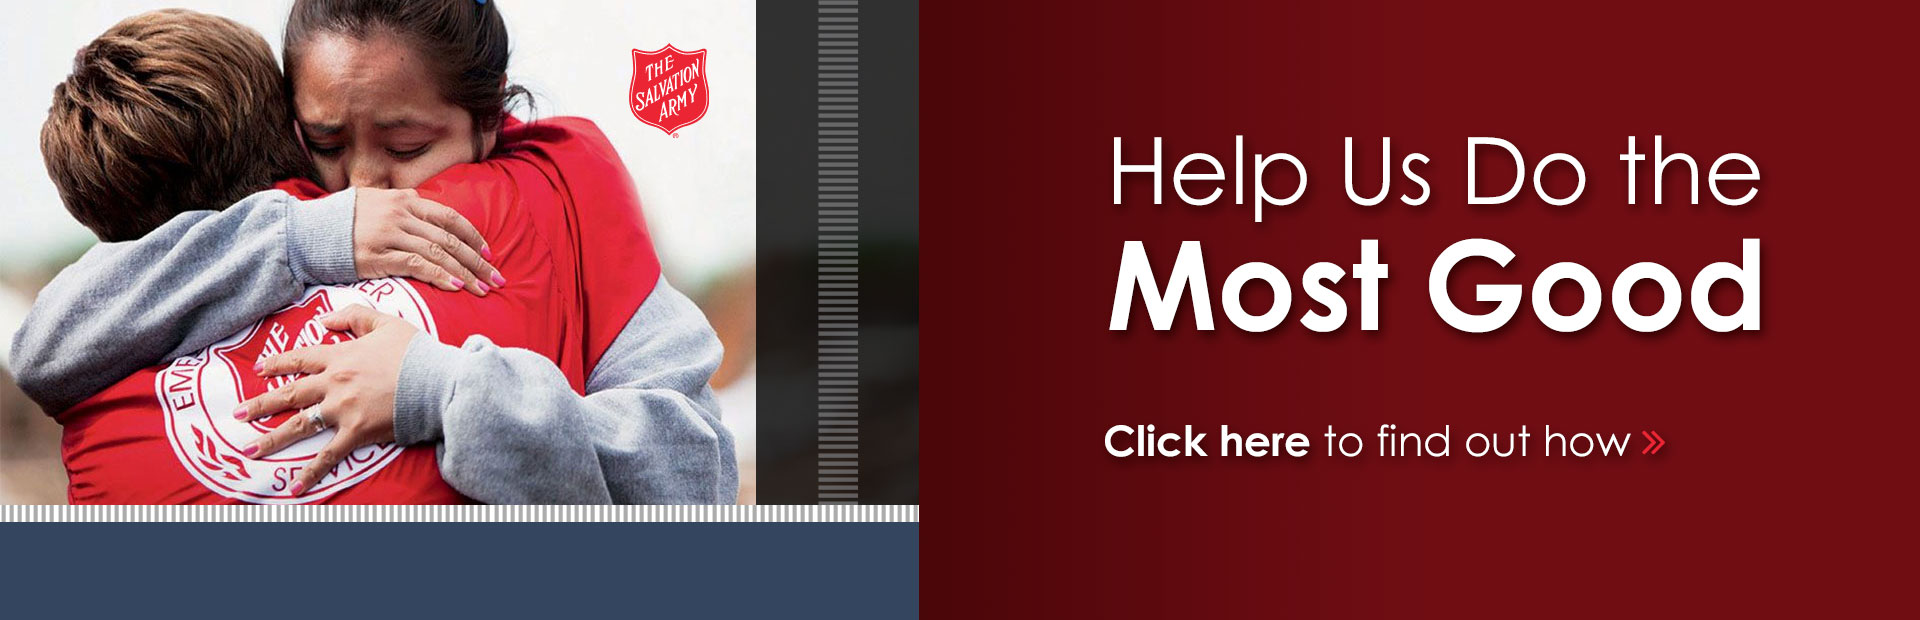 Donate to support the Salvation Army today.